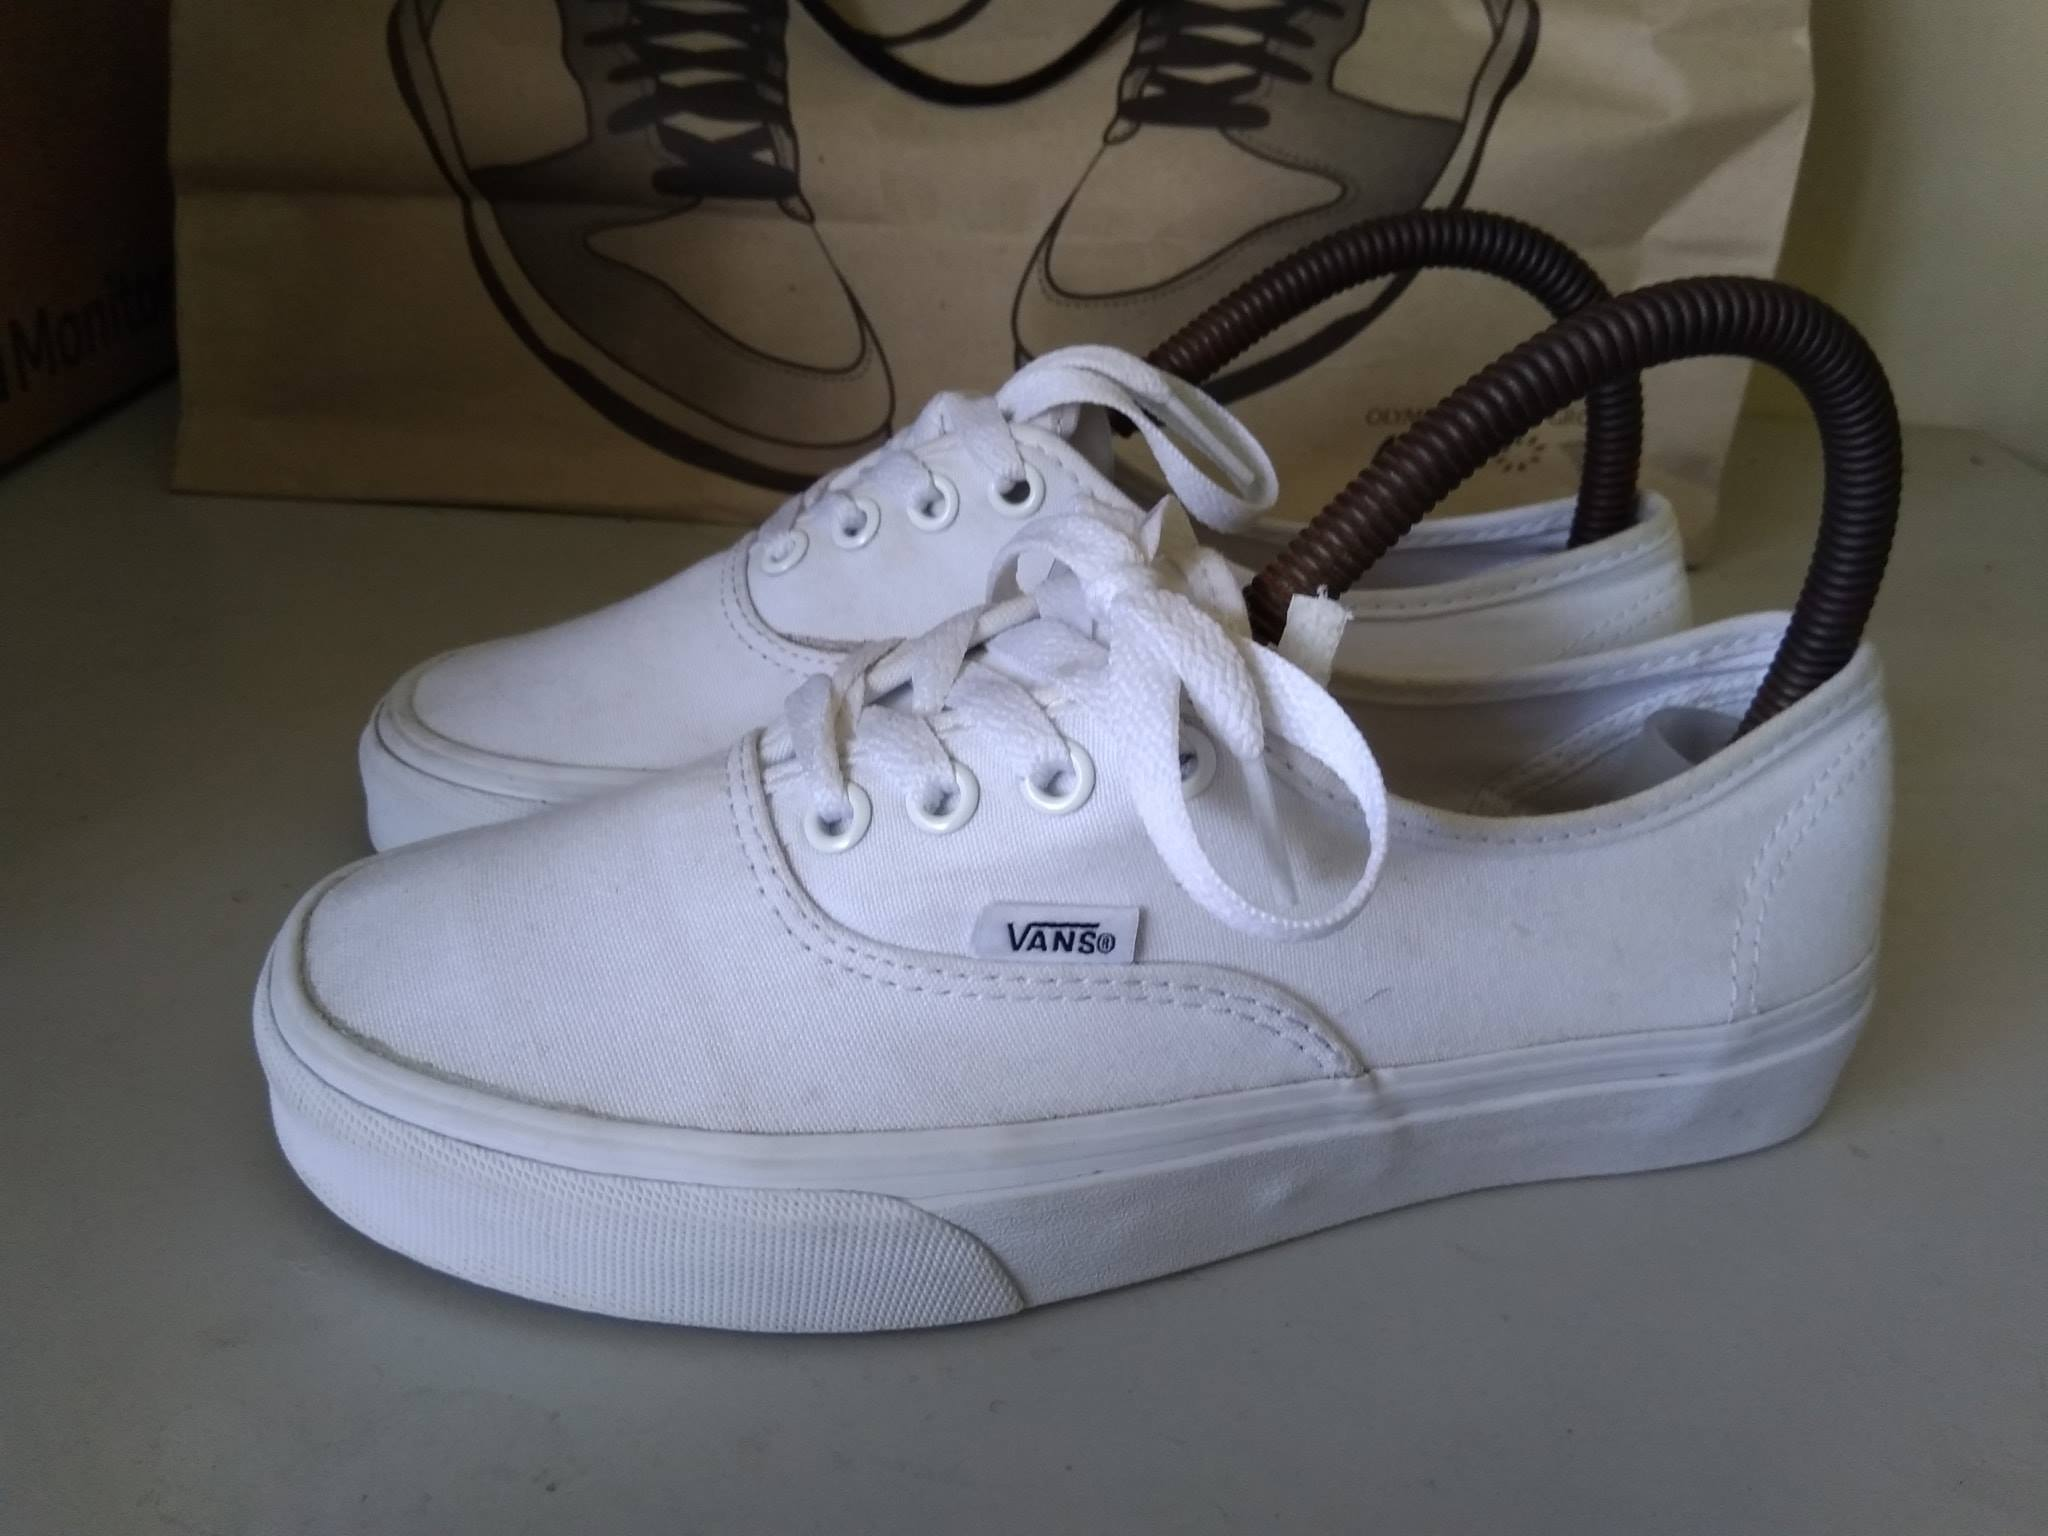 Vans Authentic white legit shoes photo